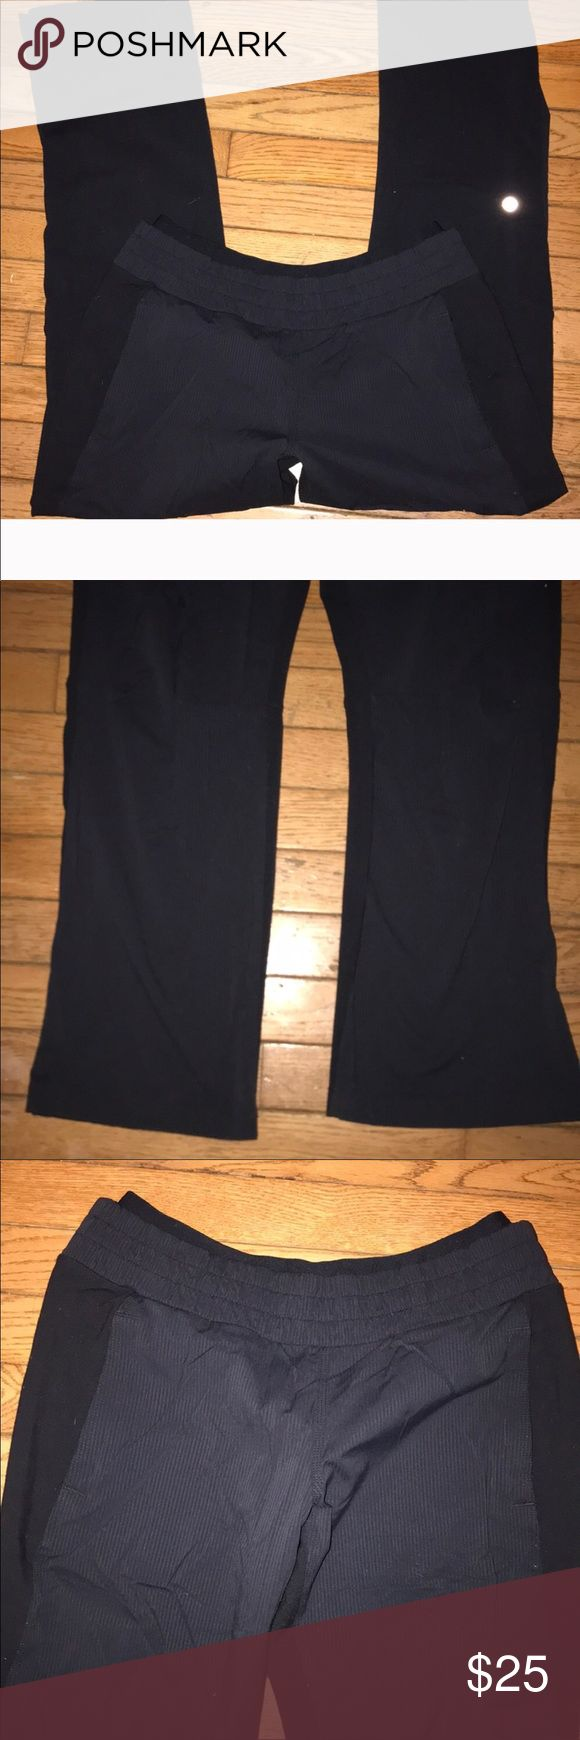 Lululemon Athletica track pants Lululemon Athletica track pants with fitted waistband size 8 excellent condition lululemon athletica Pants Track Pants & Joggers